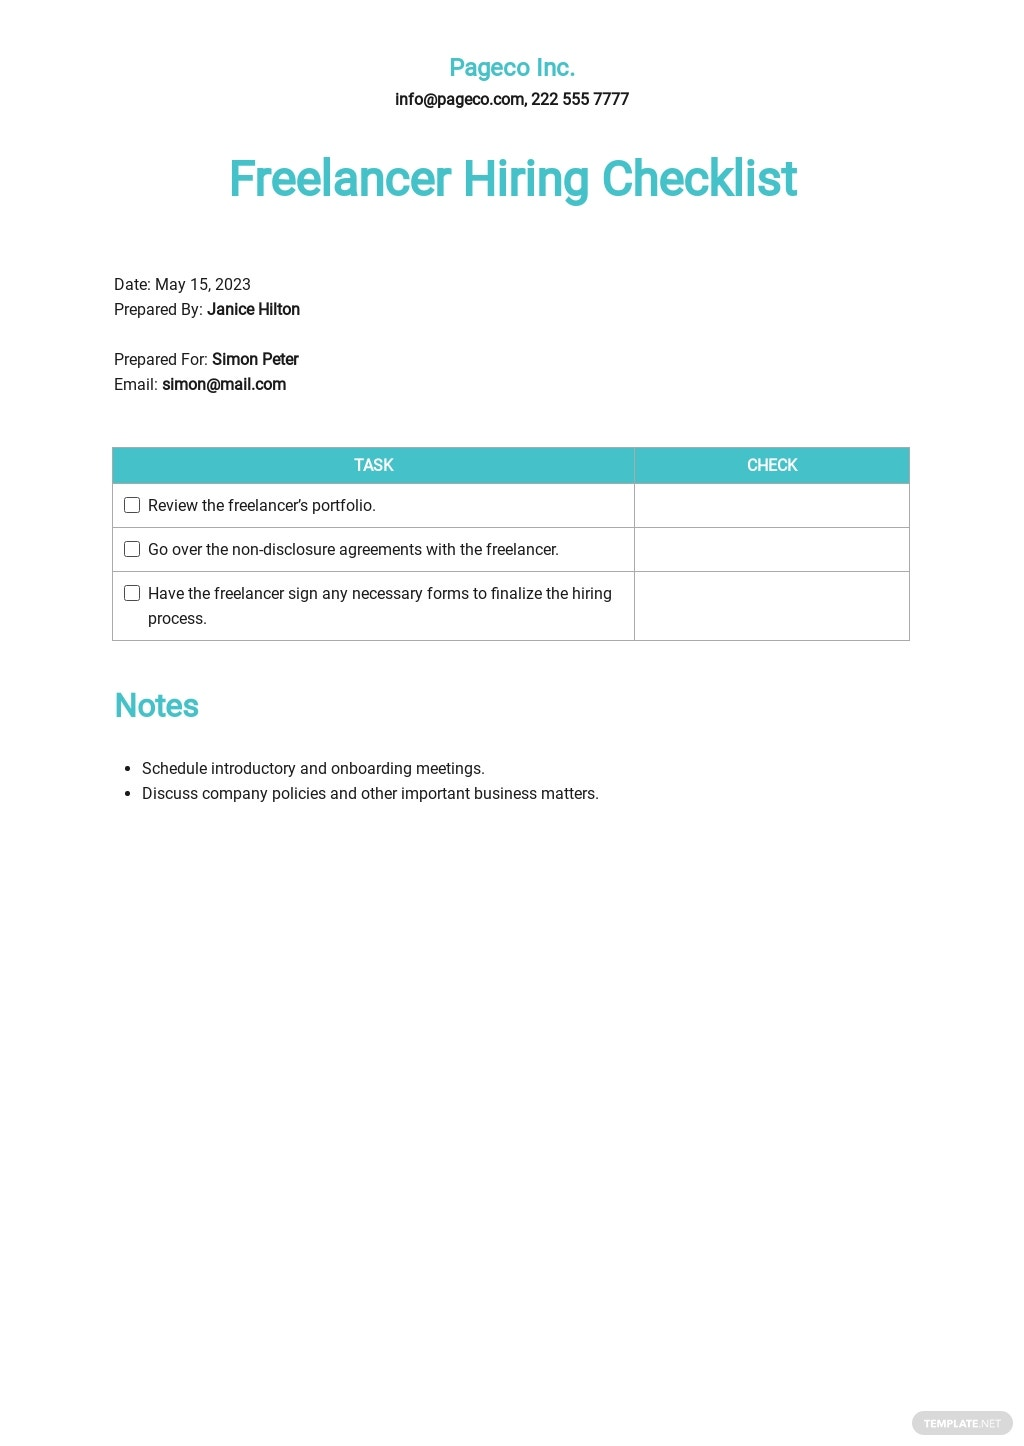 Freelancer Hiring Checklist Template.jpe